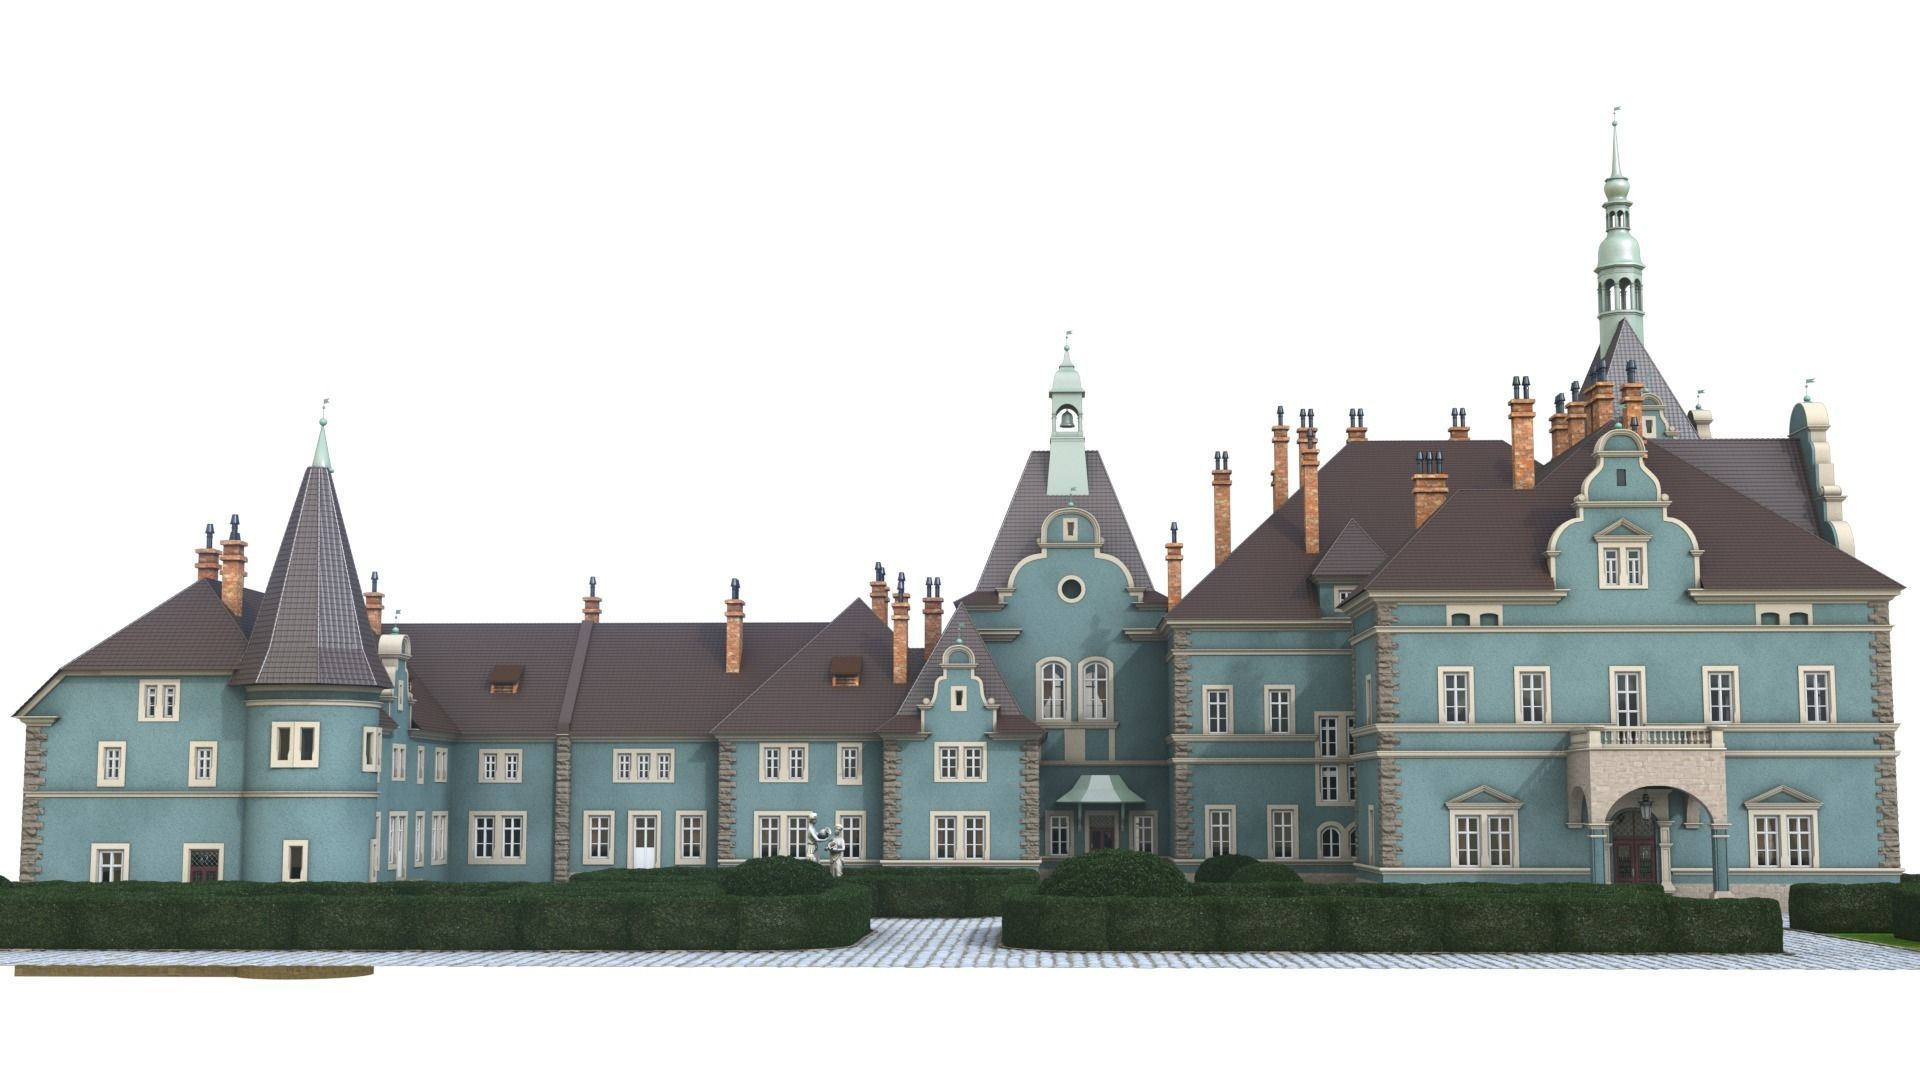 Shemborn Castle - version with non-detailed textures